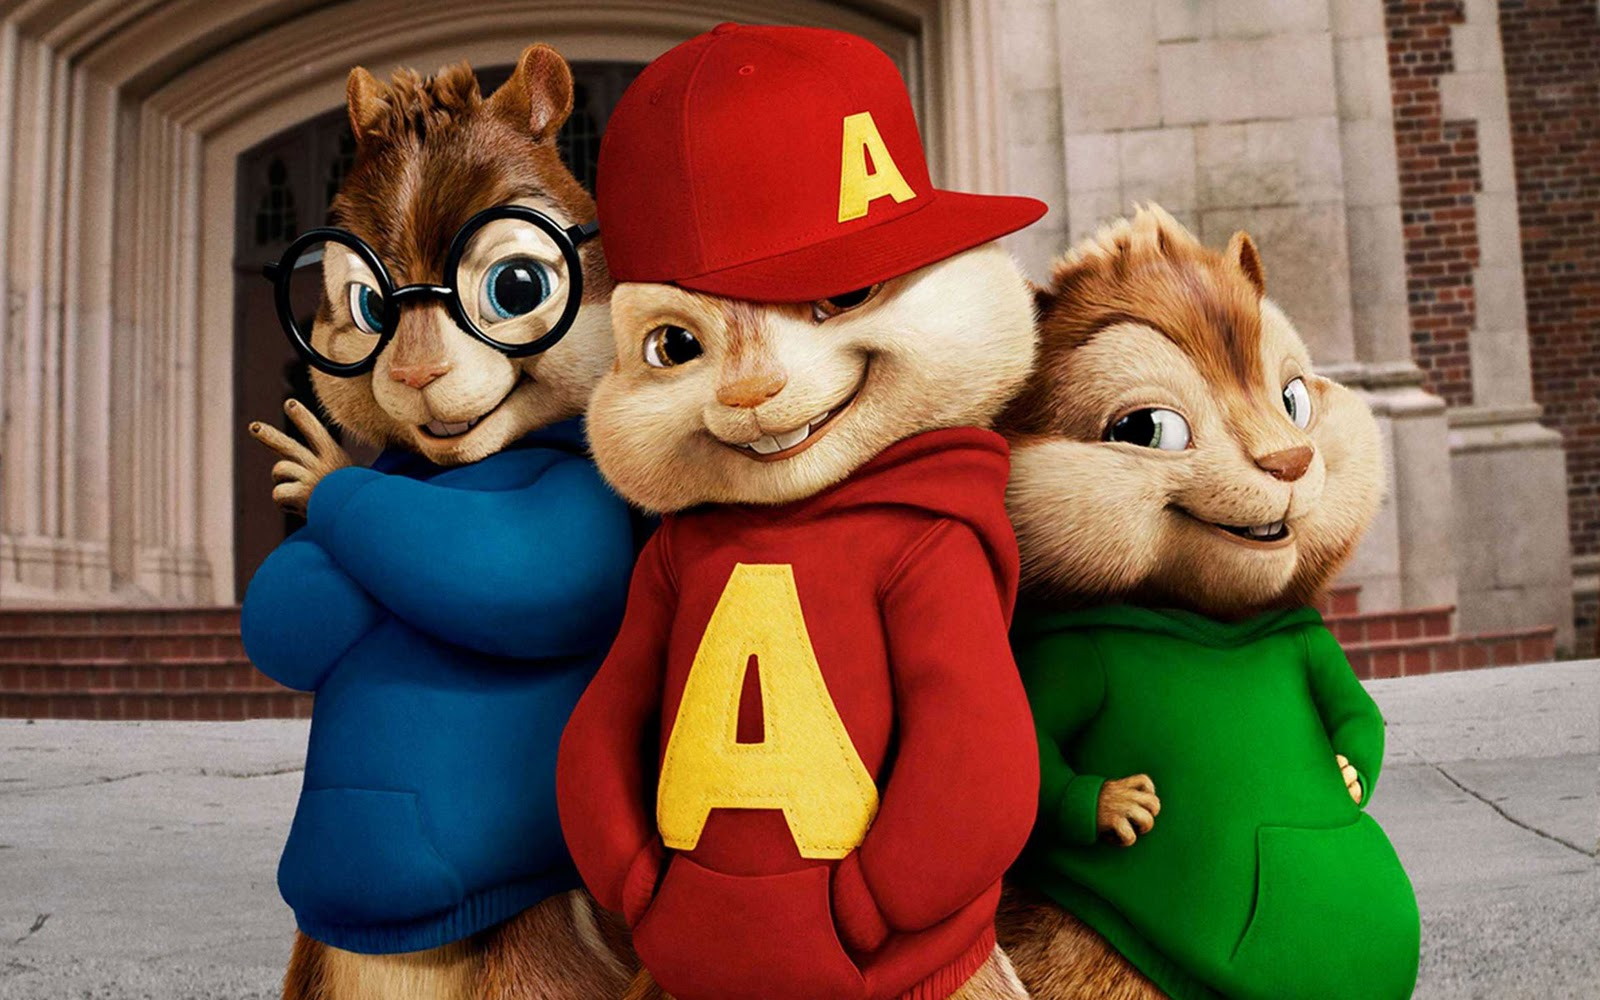 alvin and the chipmunks wallpapers - Alvin and the Chipmunks Wallpapers mob